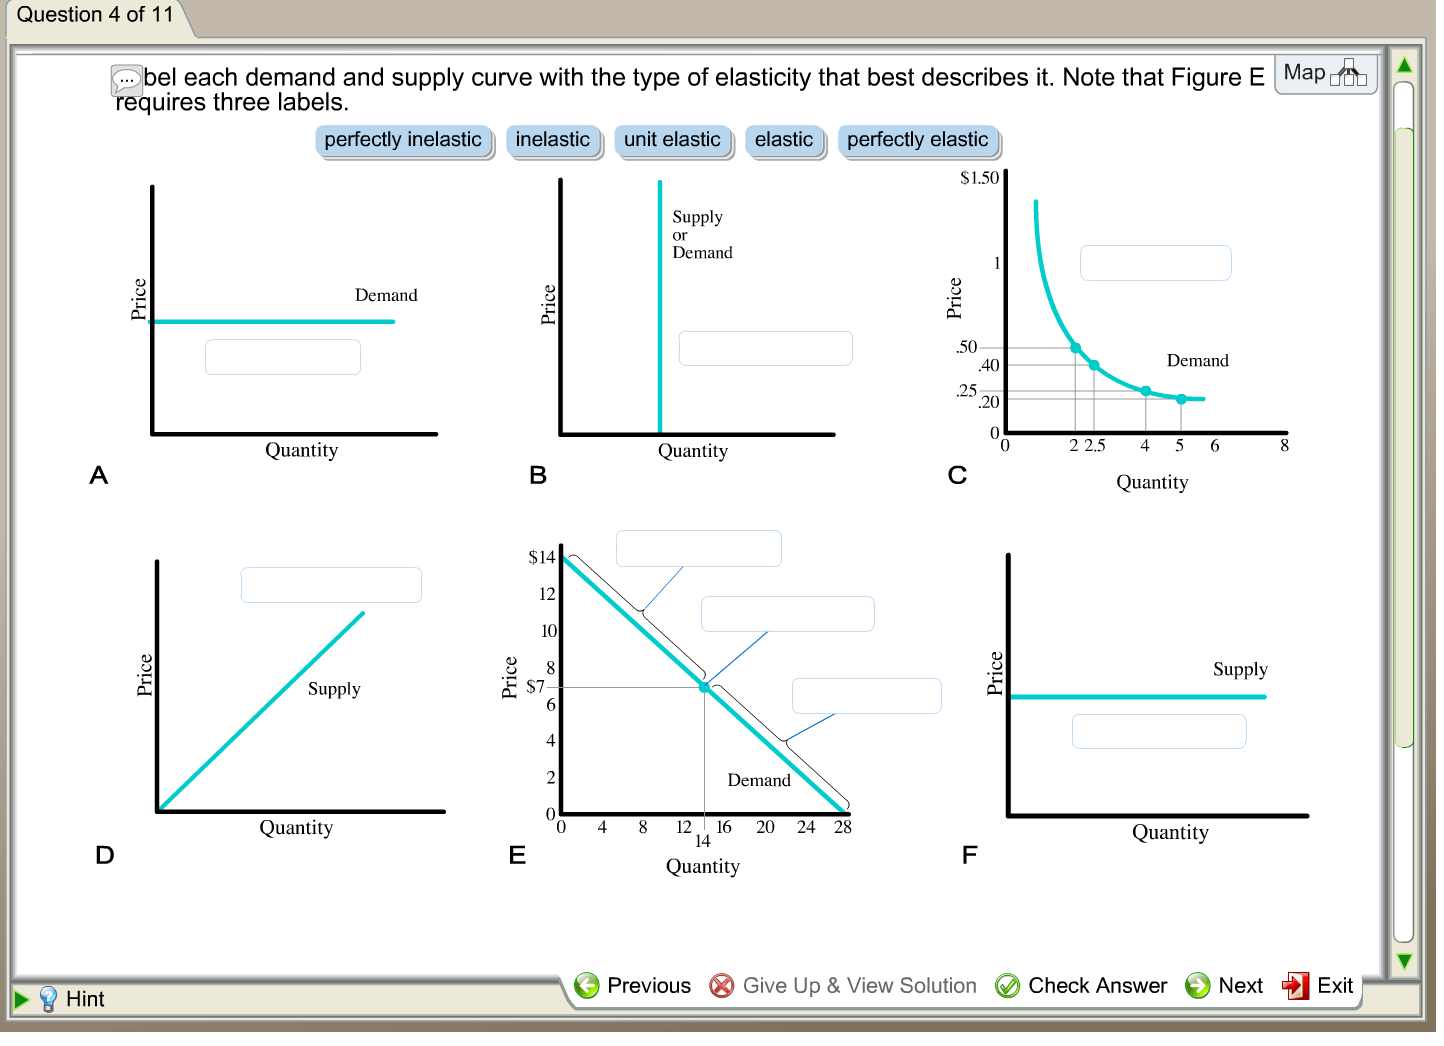 Solved Bel Each Demand And Supply Curve With The Type Of